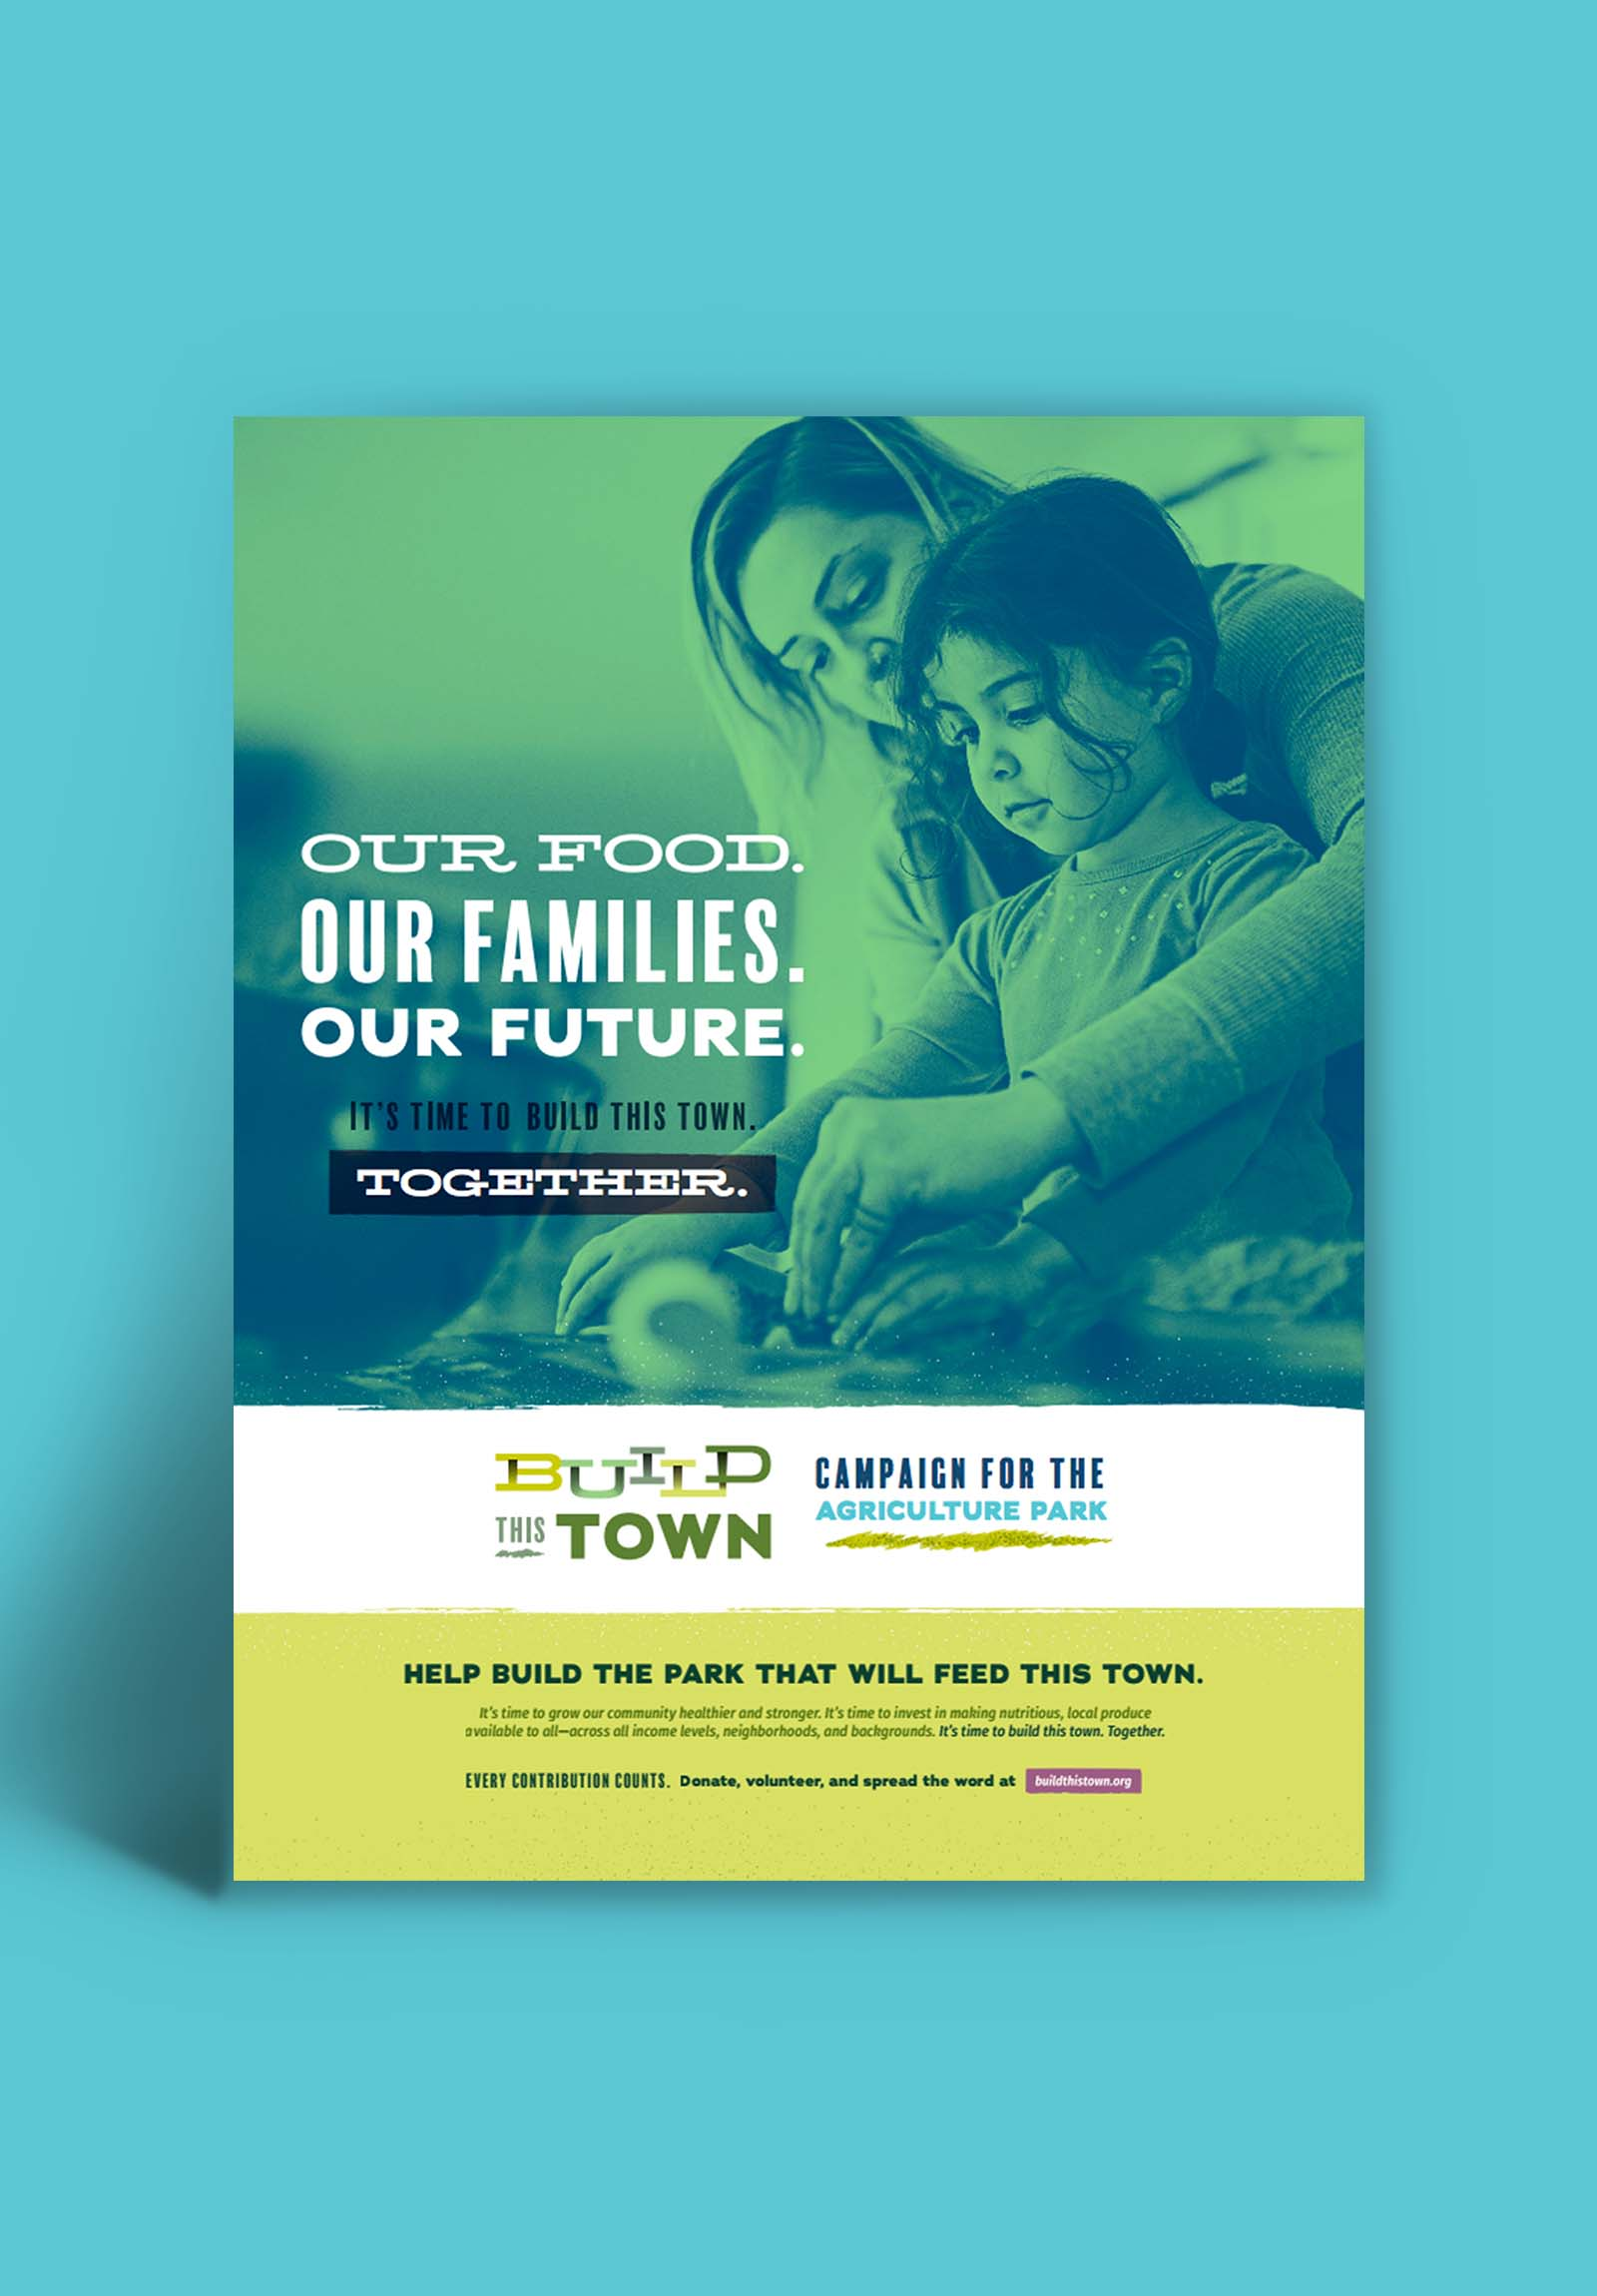 Advertising campaign for Build this Town: poster